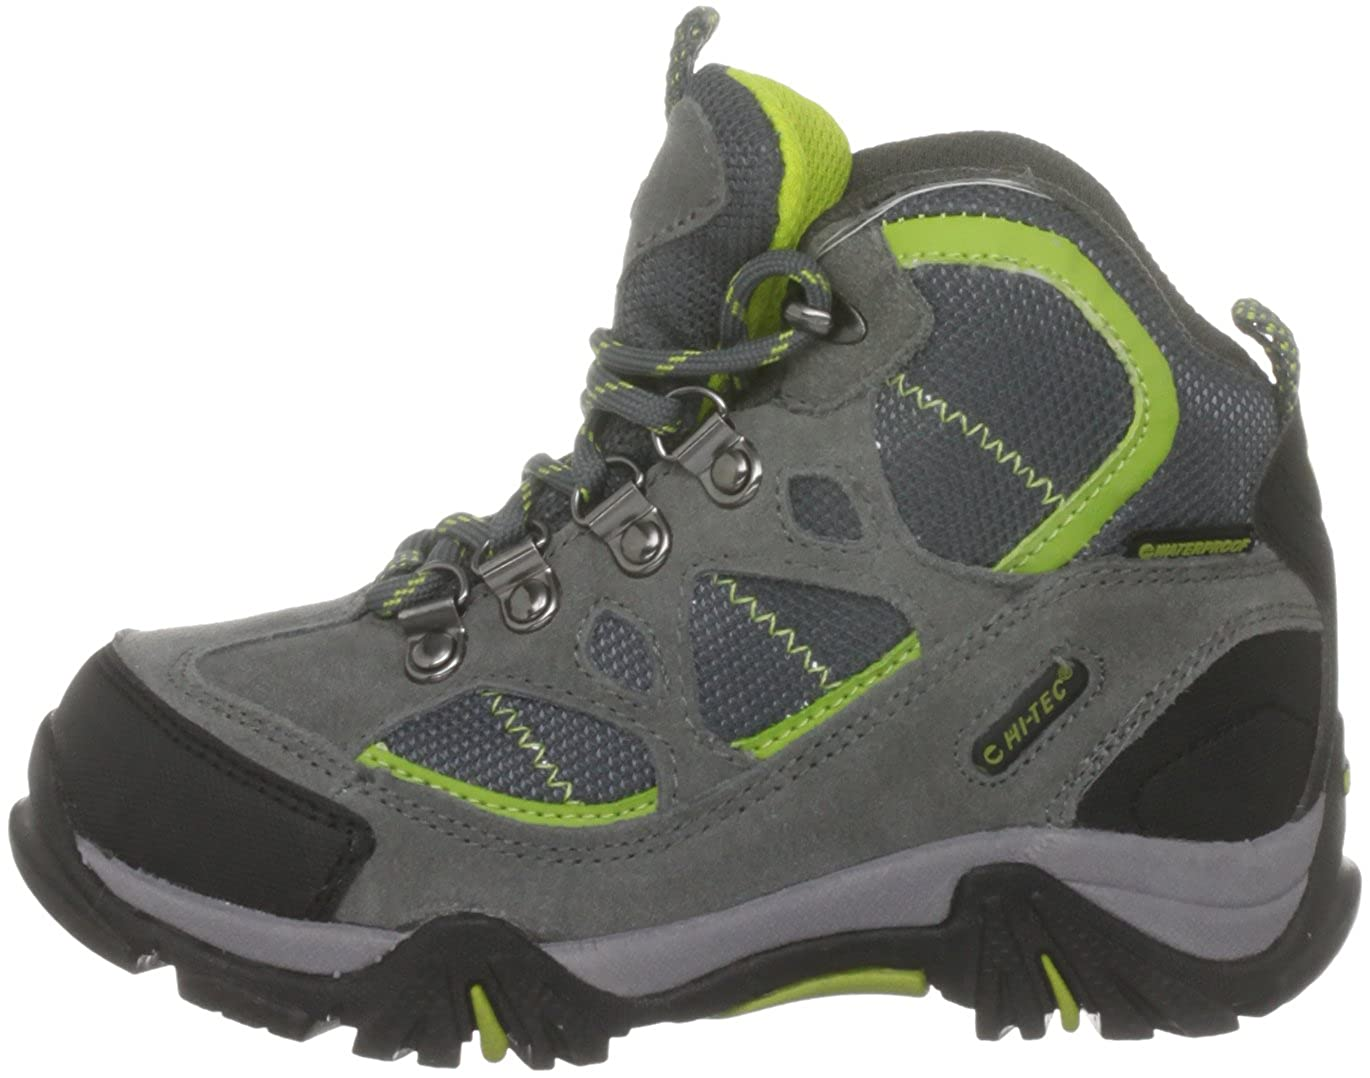 22a638cbbe2 Amazon.com | Hi Tec Boy's Renegade Waterproof Walking Boots | Shoes